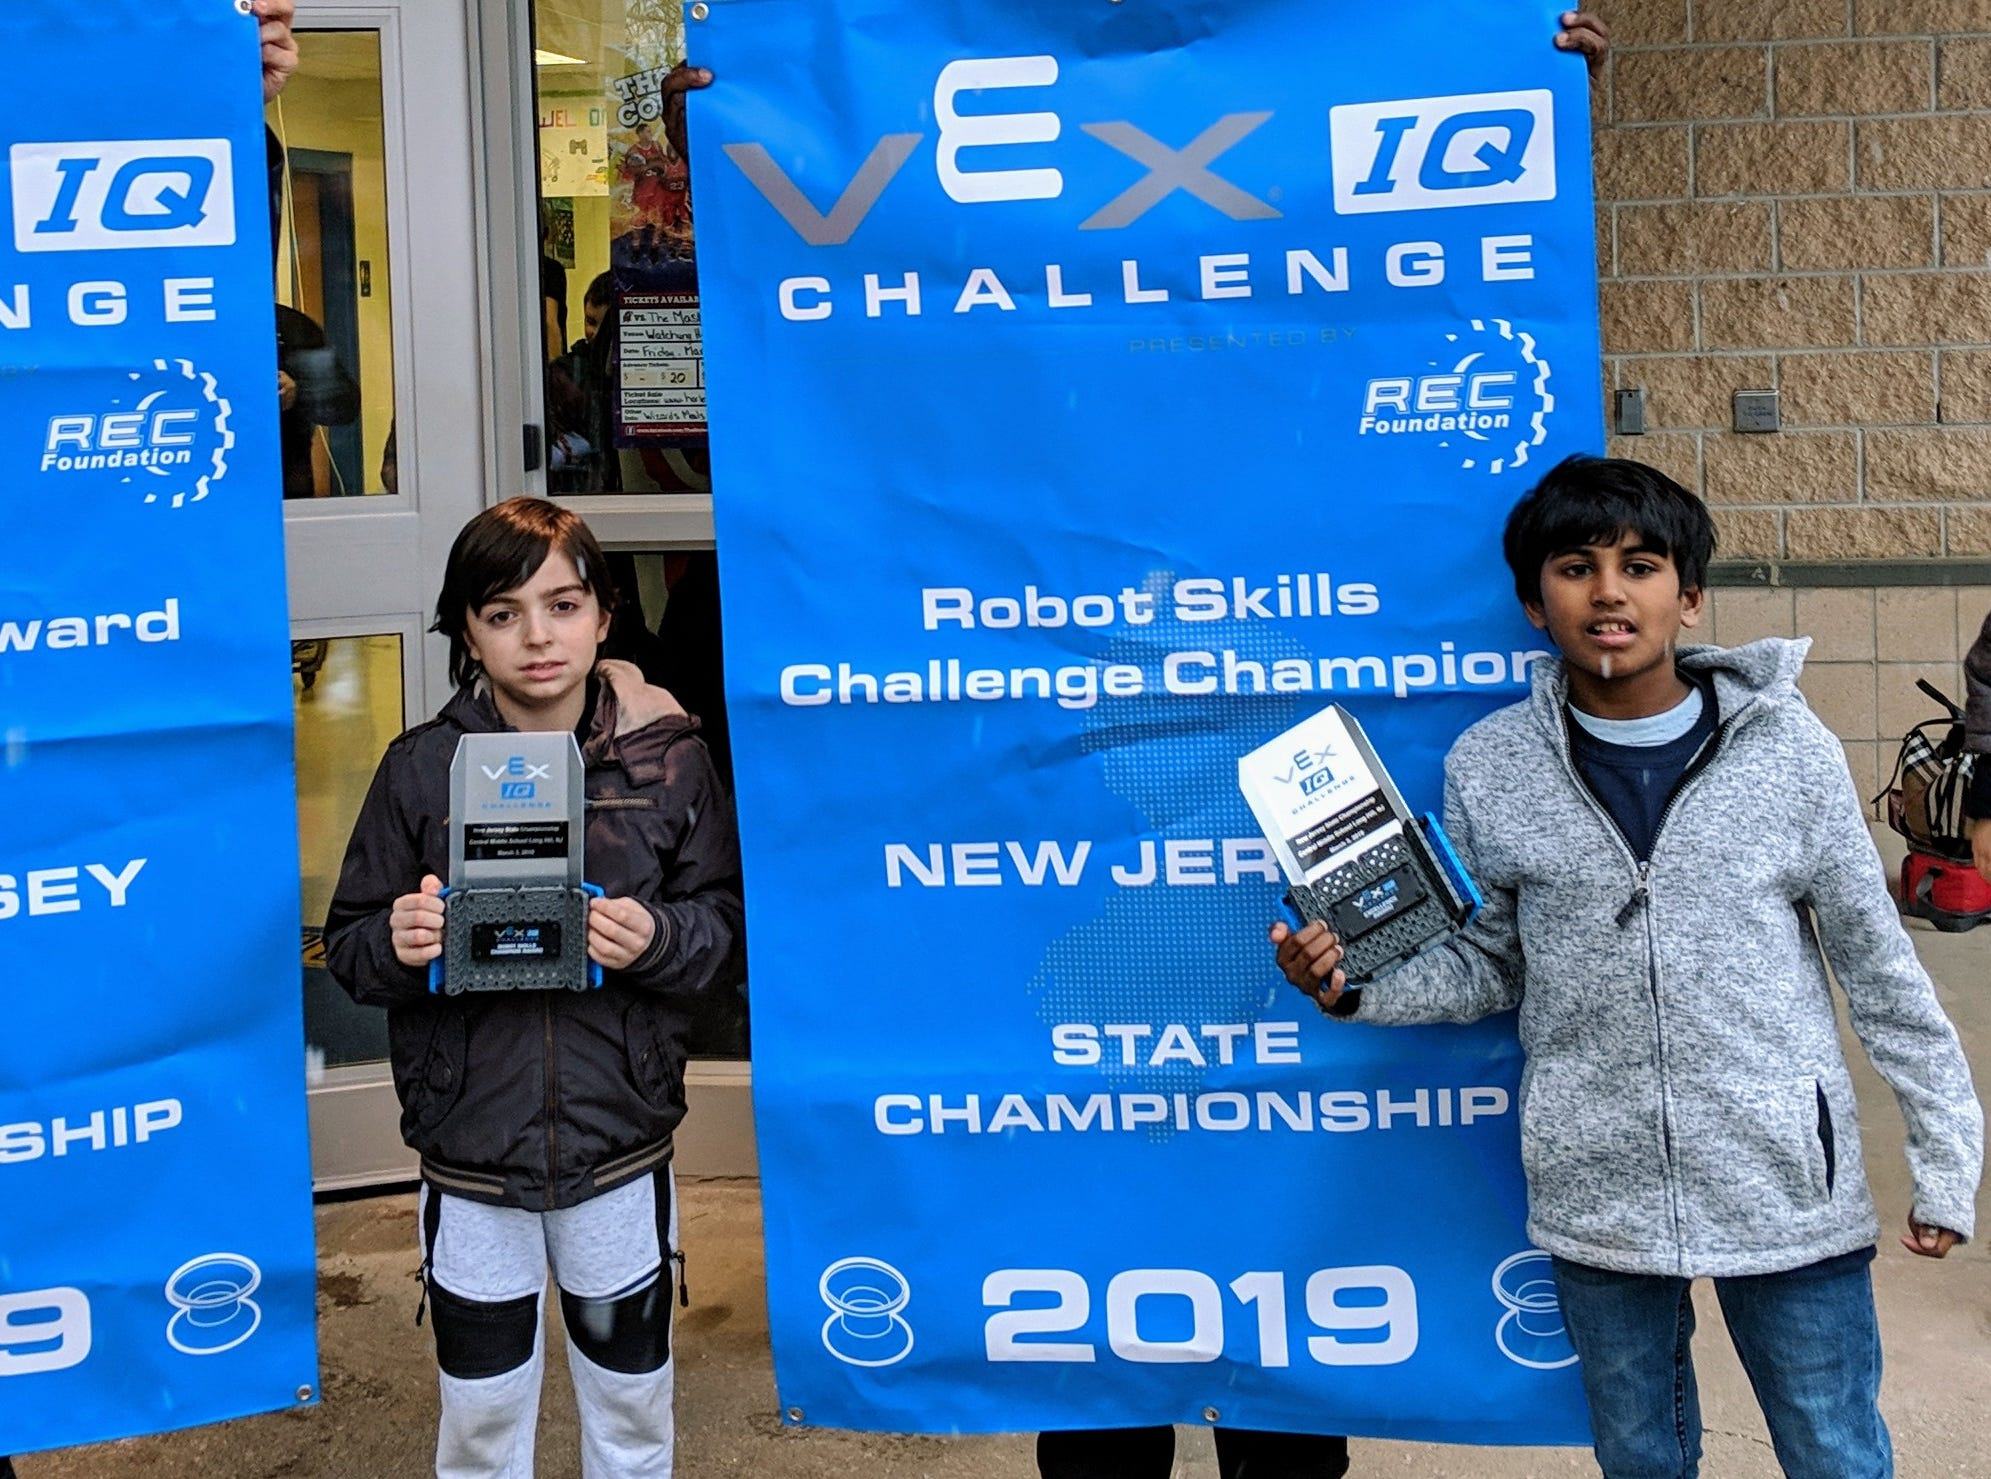 Thomas Edison EnergySmart Charter School's VEX IQ Team, E-Smart, made up of students Gagan and Levent recently participated in the State Championship Tournament held in Long Hill. E-Smart won the First Place award for Excellence.This award qualifies E-Smart to represent New Jersey at the World Championship Tournament to be held in Kentucky in April. Thomas Edison EnergySmart Charter School is located in the Somerset section of Franklin Township.